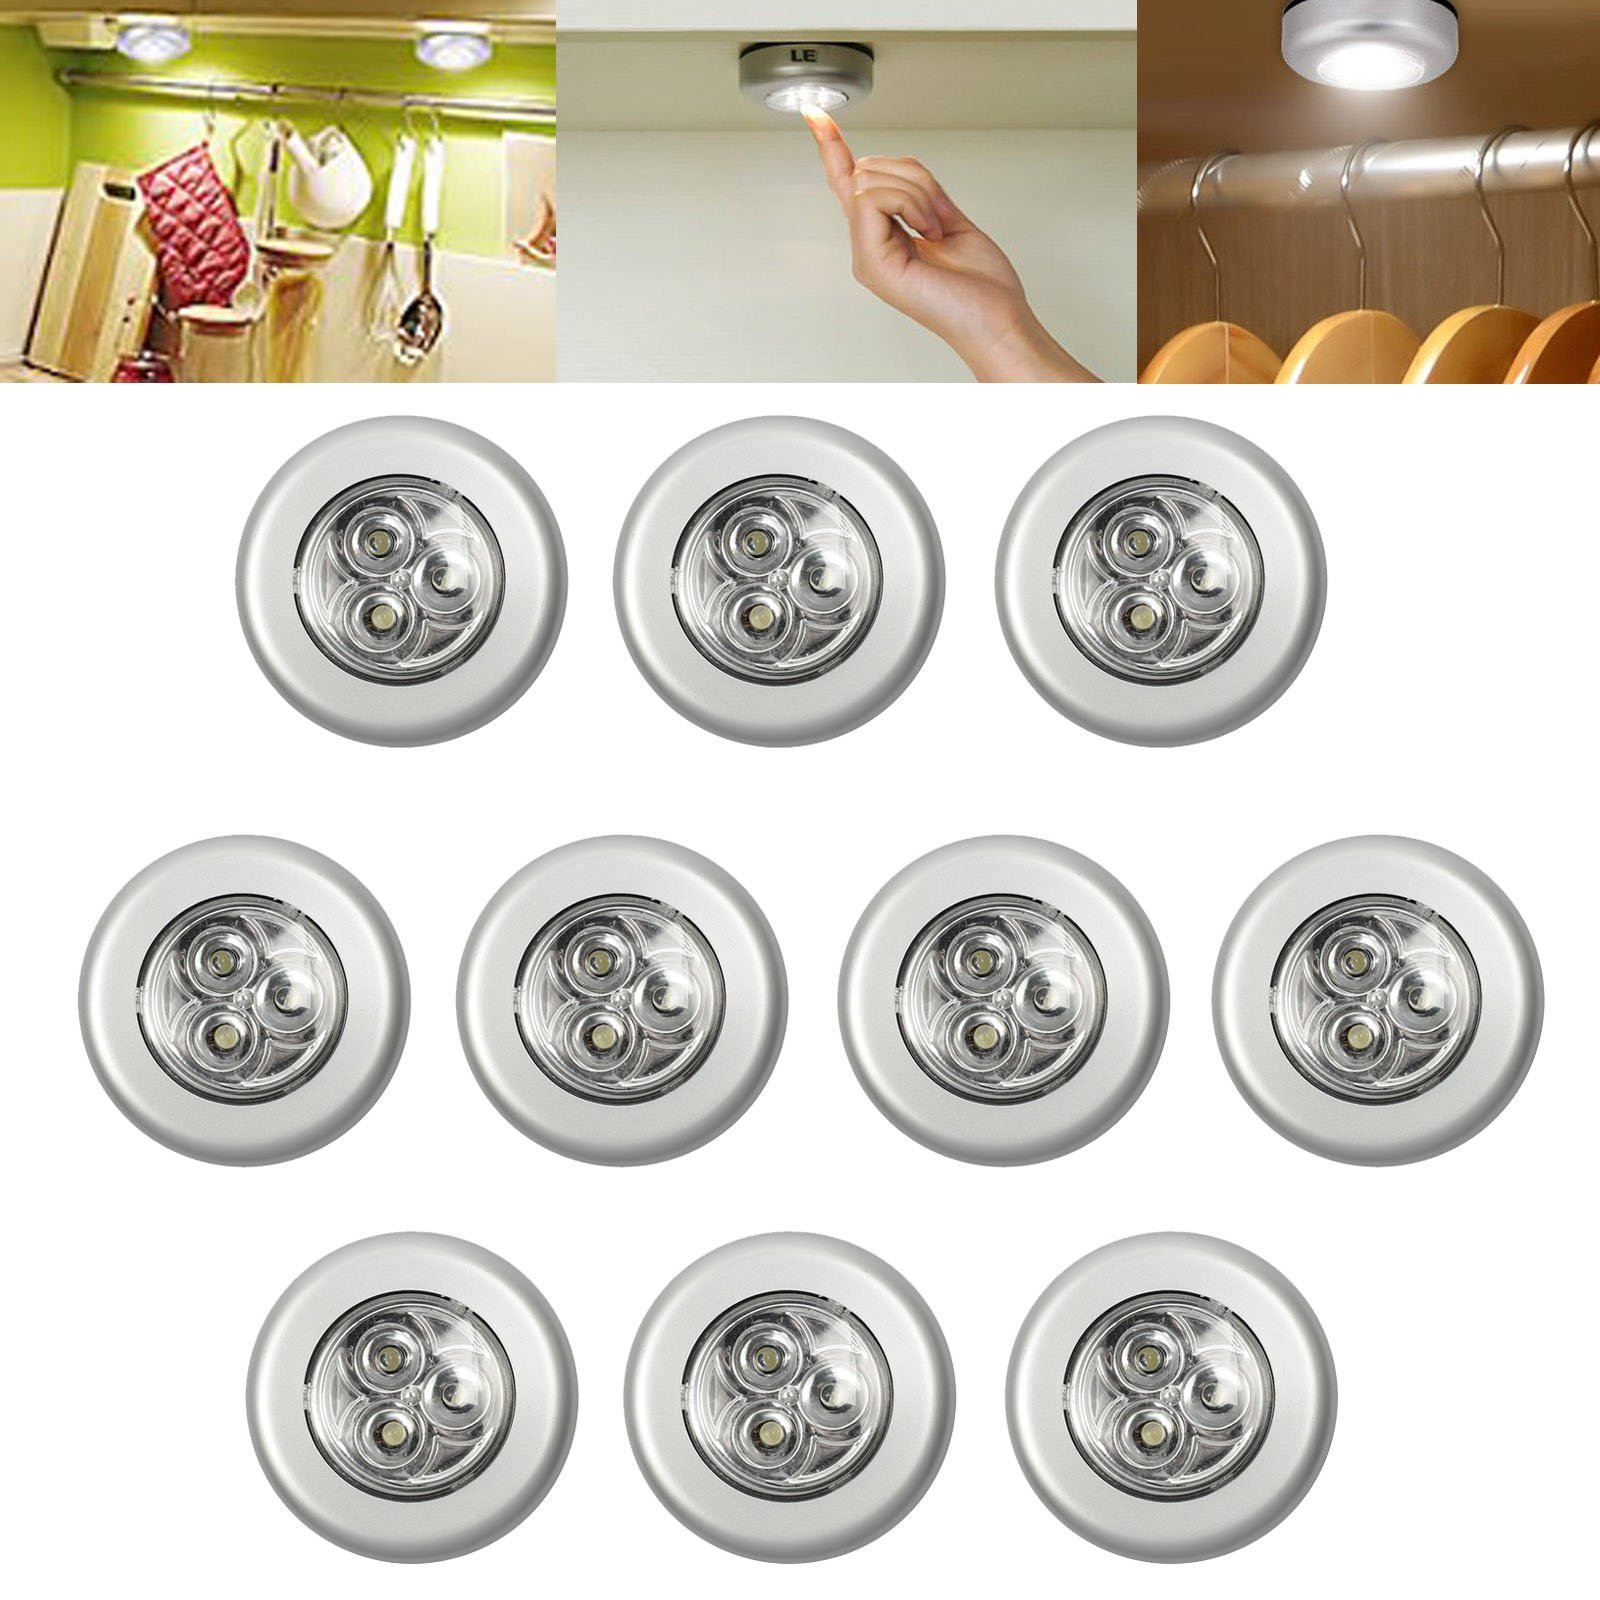 AUTOUTLET 10pcs 3 LED Battery Operated Lights Touch Push on/off Light Self-stick on Click Night Light under Lighting Bright for Closets Kitchen Cabinet Storage Rooms Bedside Light